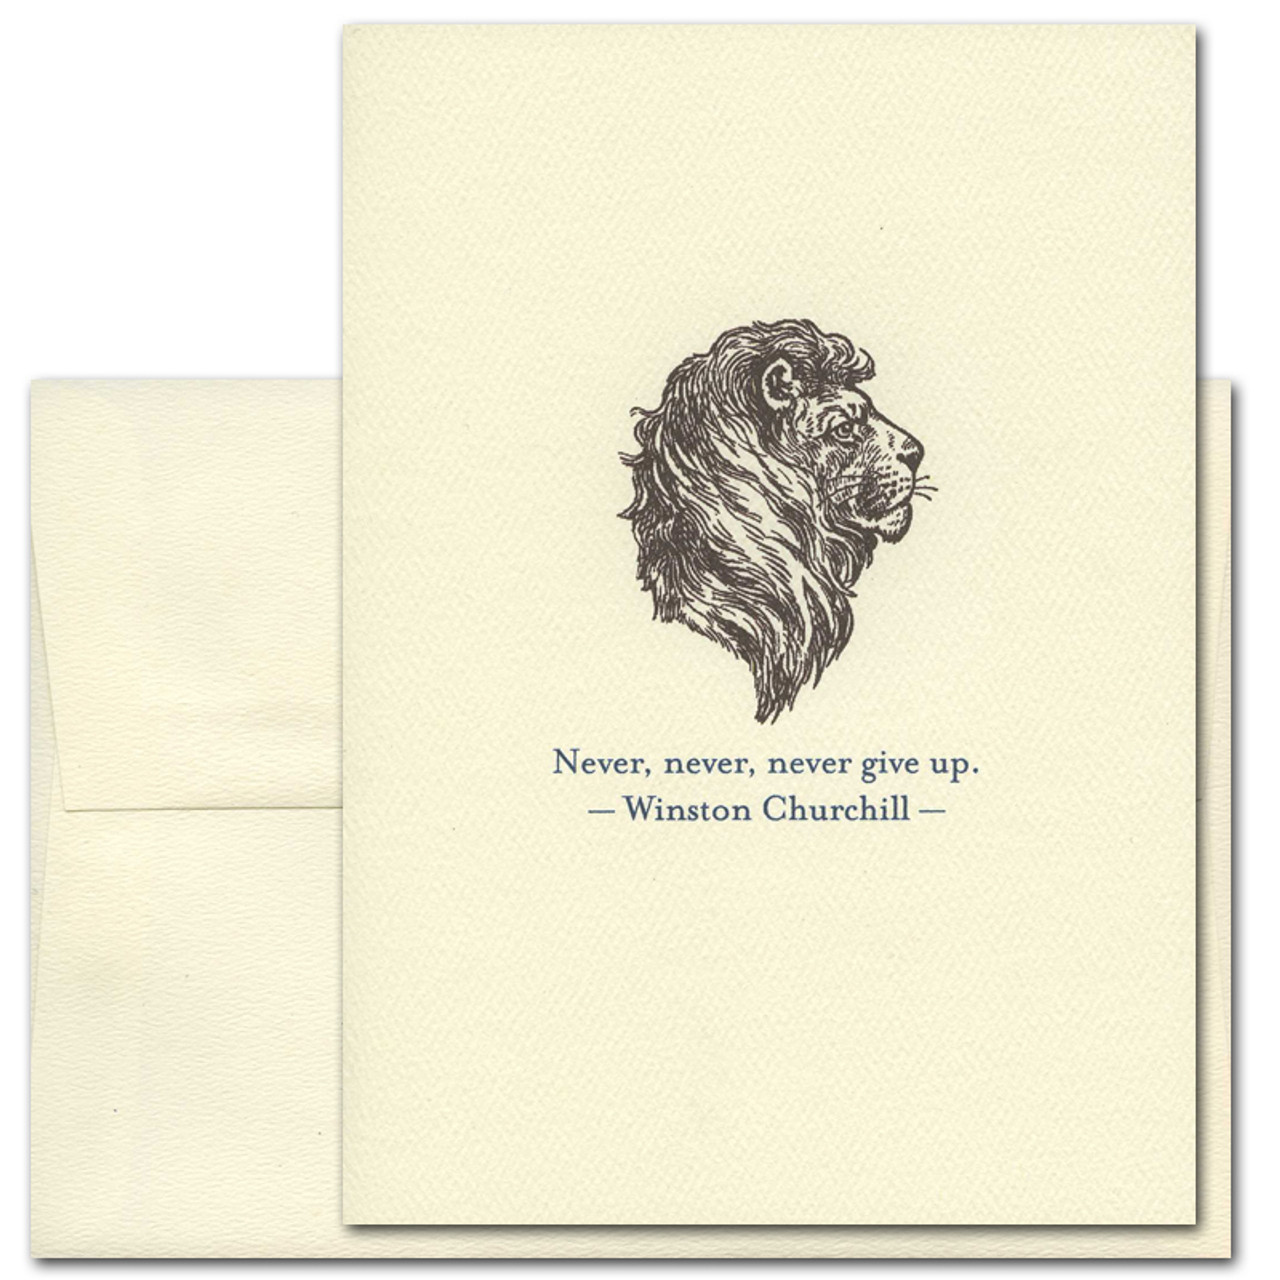 """Quotation Card """"Never Give Up: Churchill"""" Cover shows old fashioned illustration of a lion with a quote from Winston Churchill that reads: """"Never, never, never give up"""""""